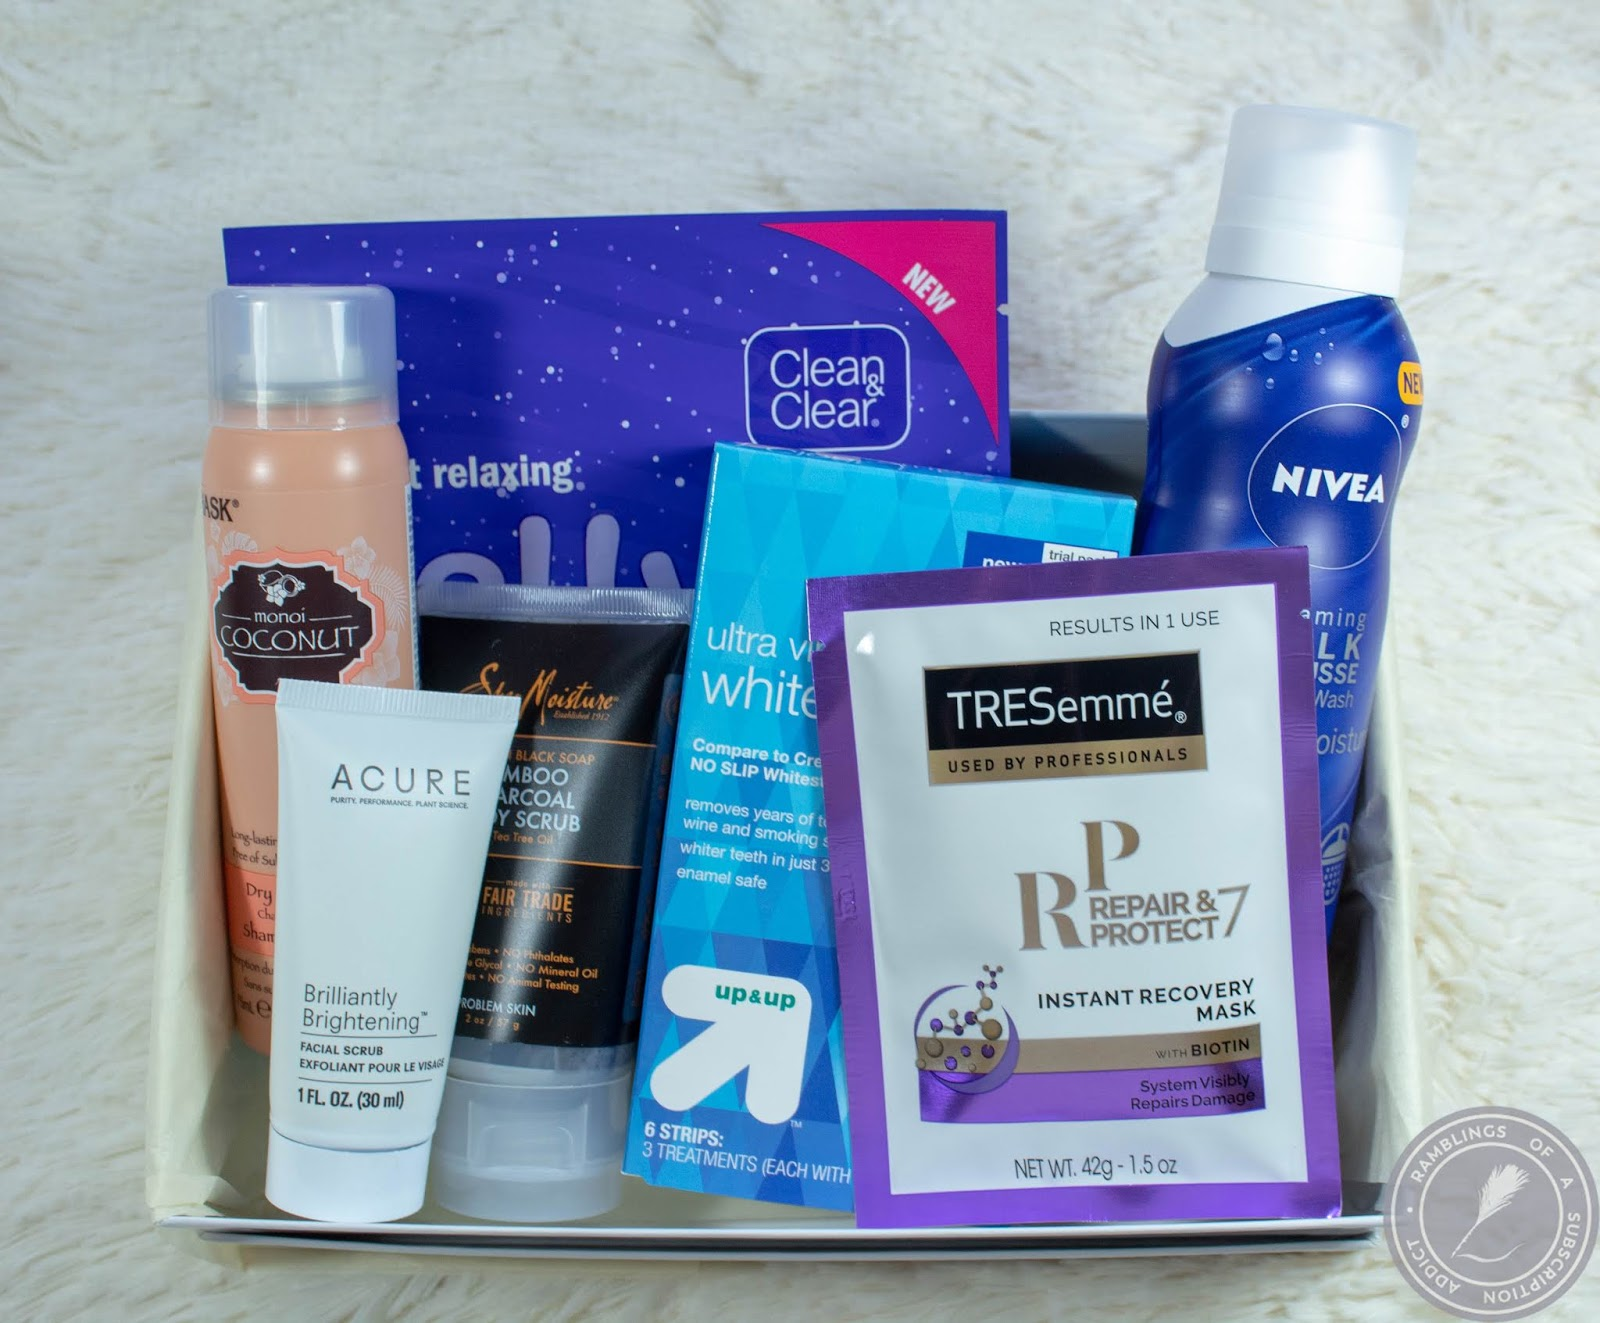 Target Beauty Box - July 2018 | Frankly Kiersten Reviews